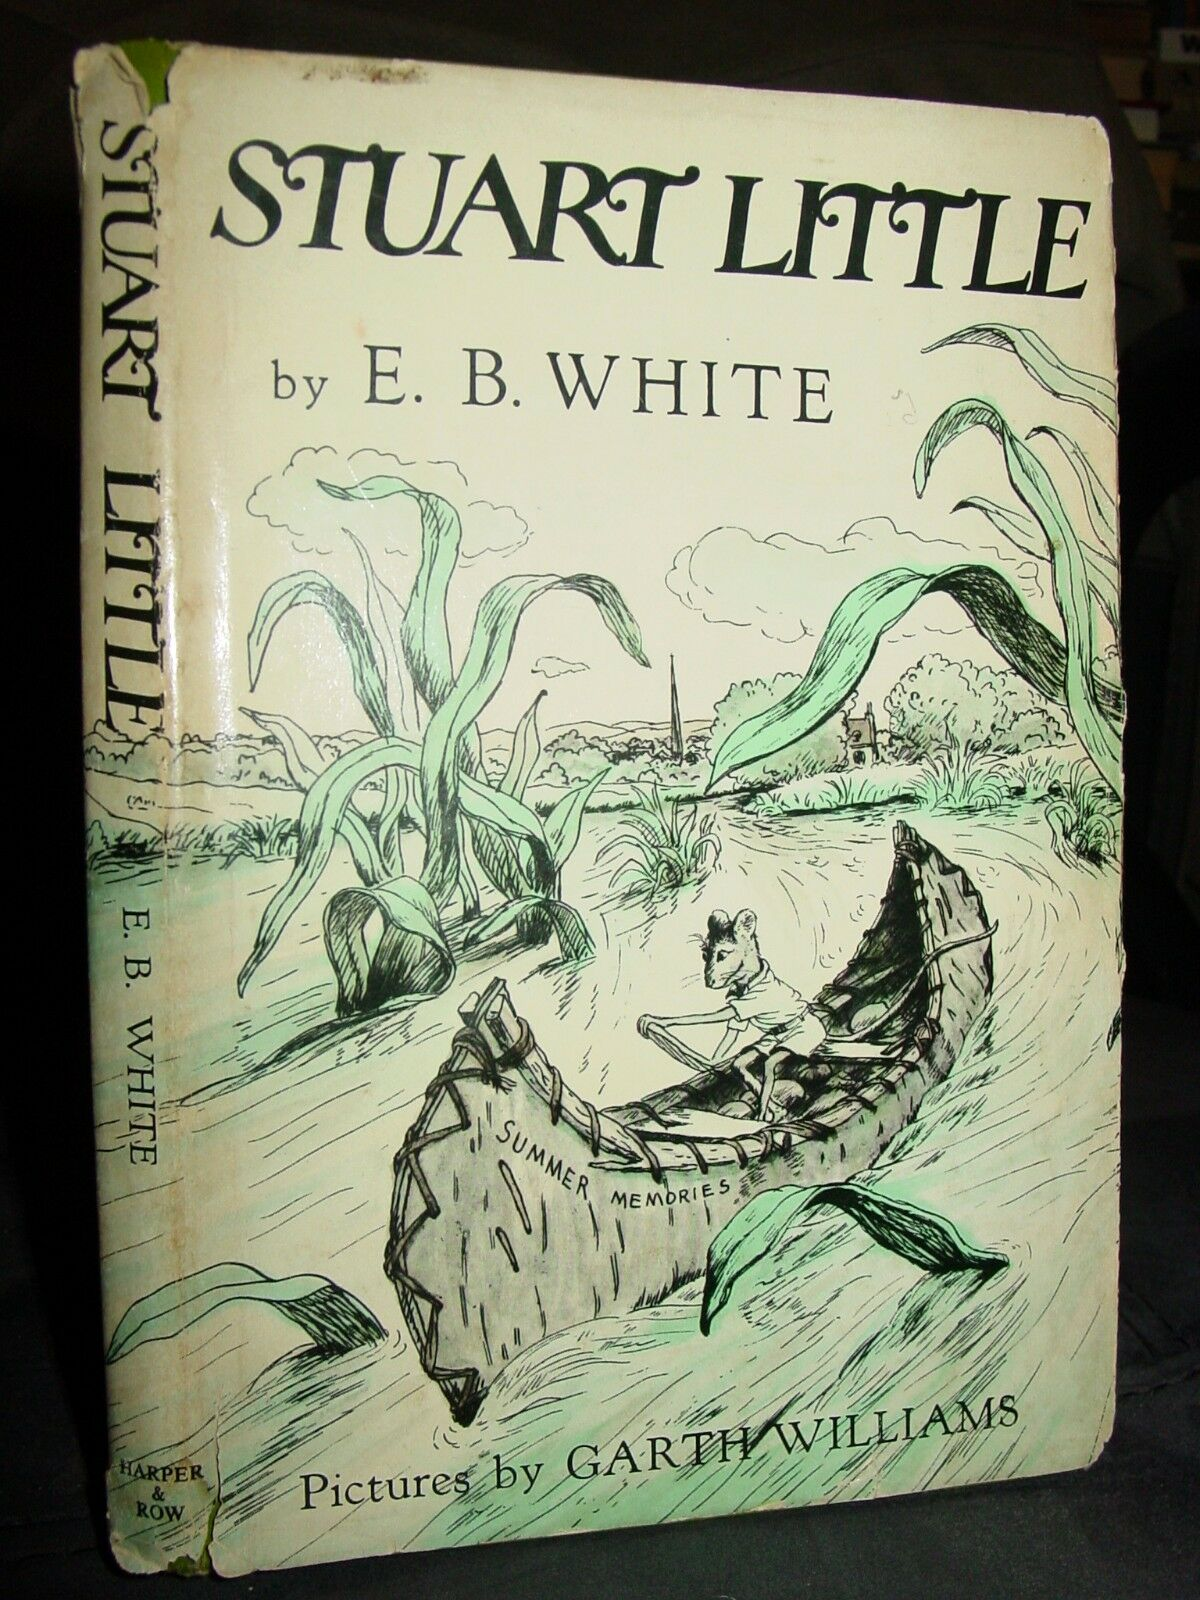 Book Bag  Five Great Books About New York City Paris Review Here is new york eb white essay